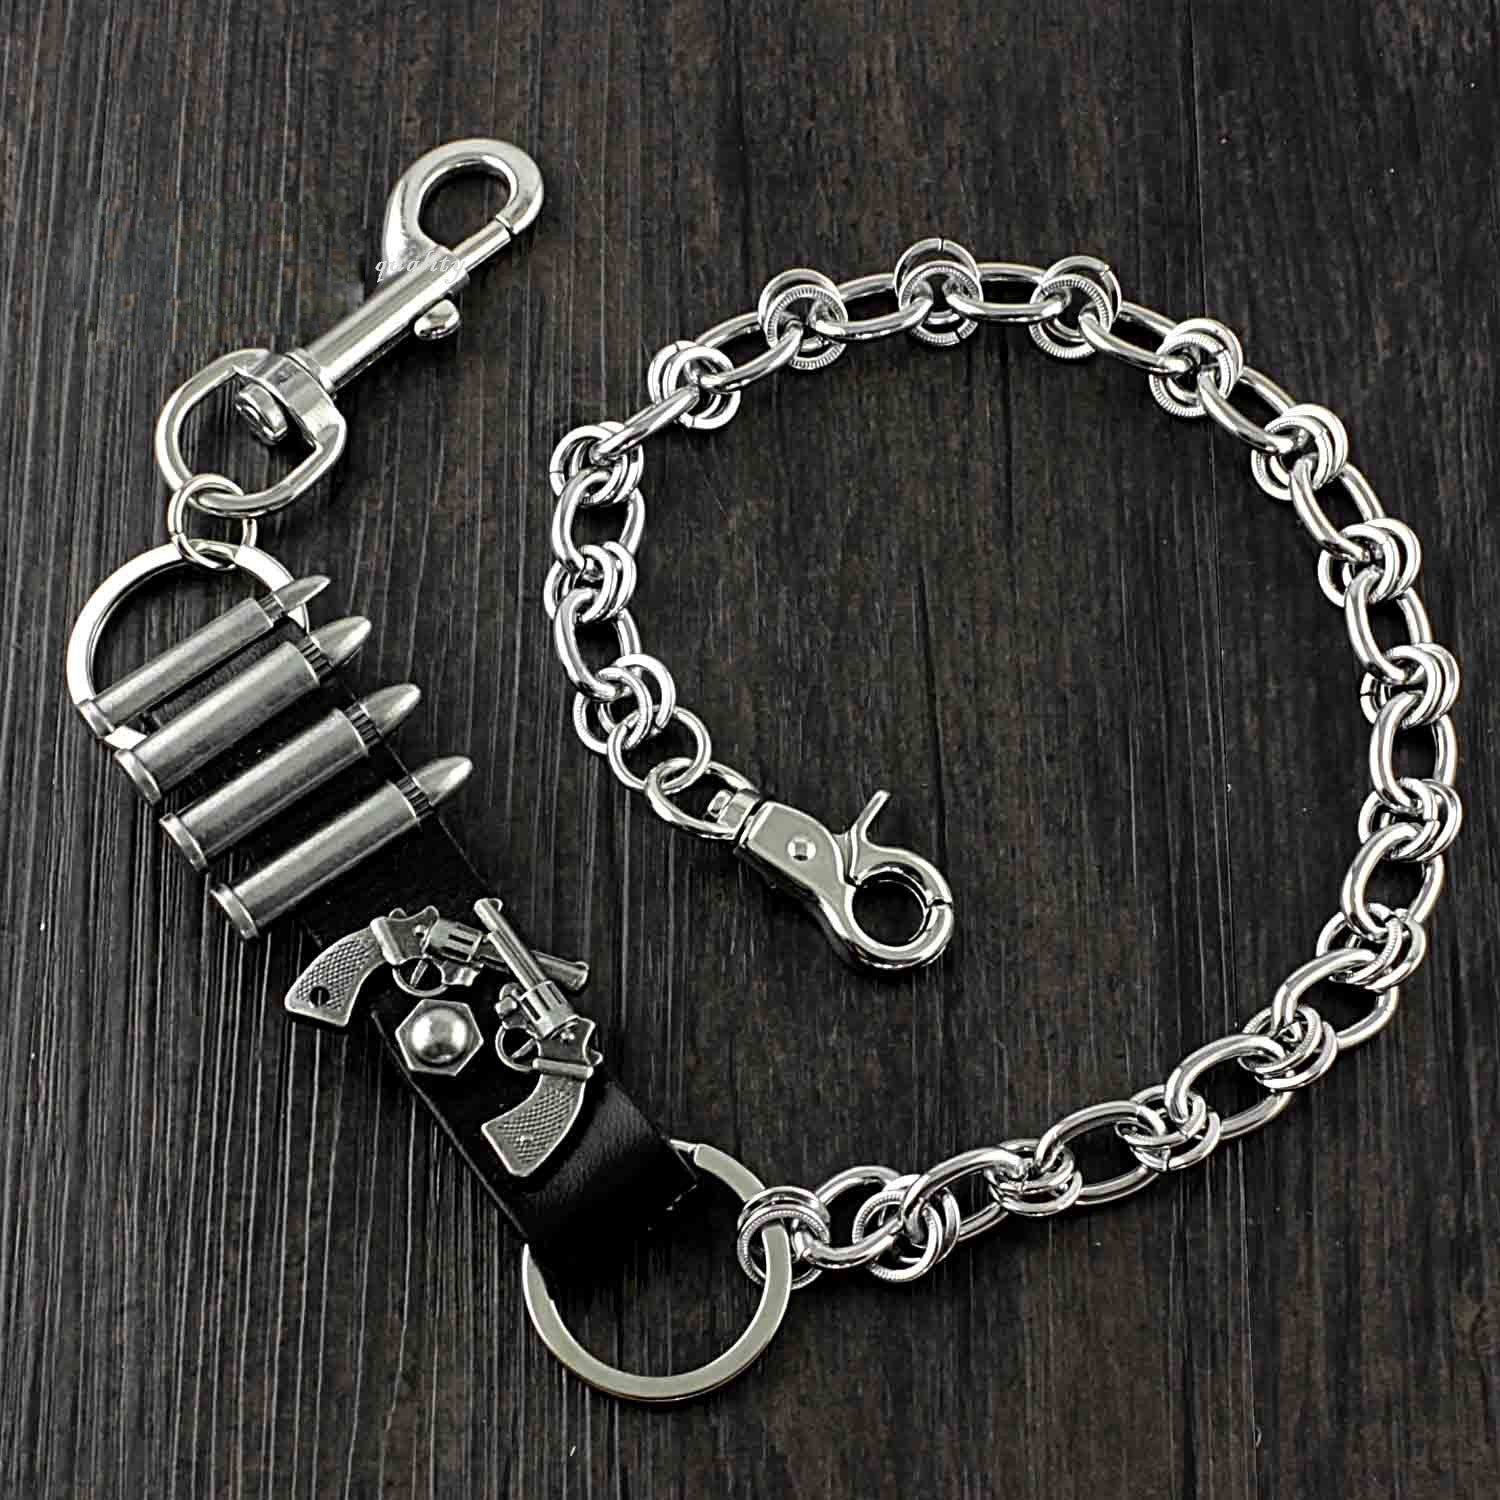 Solid Stainless Steel Revolver Wallet Chain Cool Punk Rock Biker Trucker Wallet Chain Trucker Wallet Chain for Men